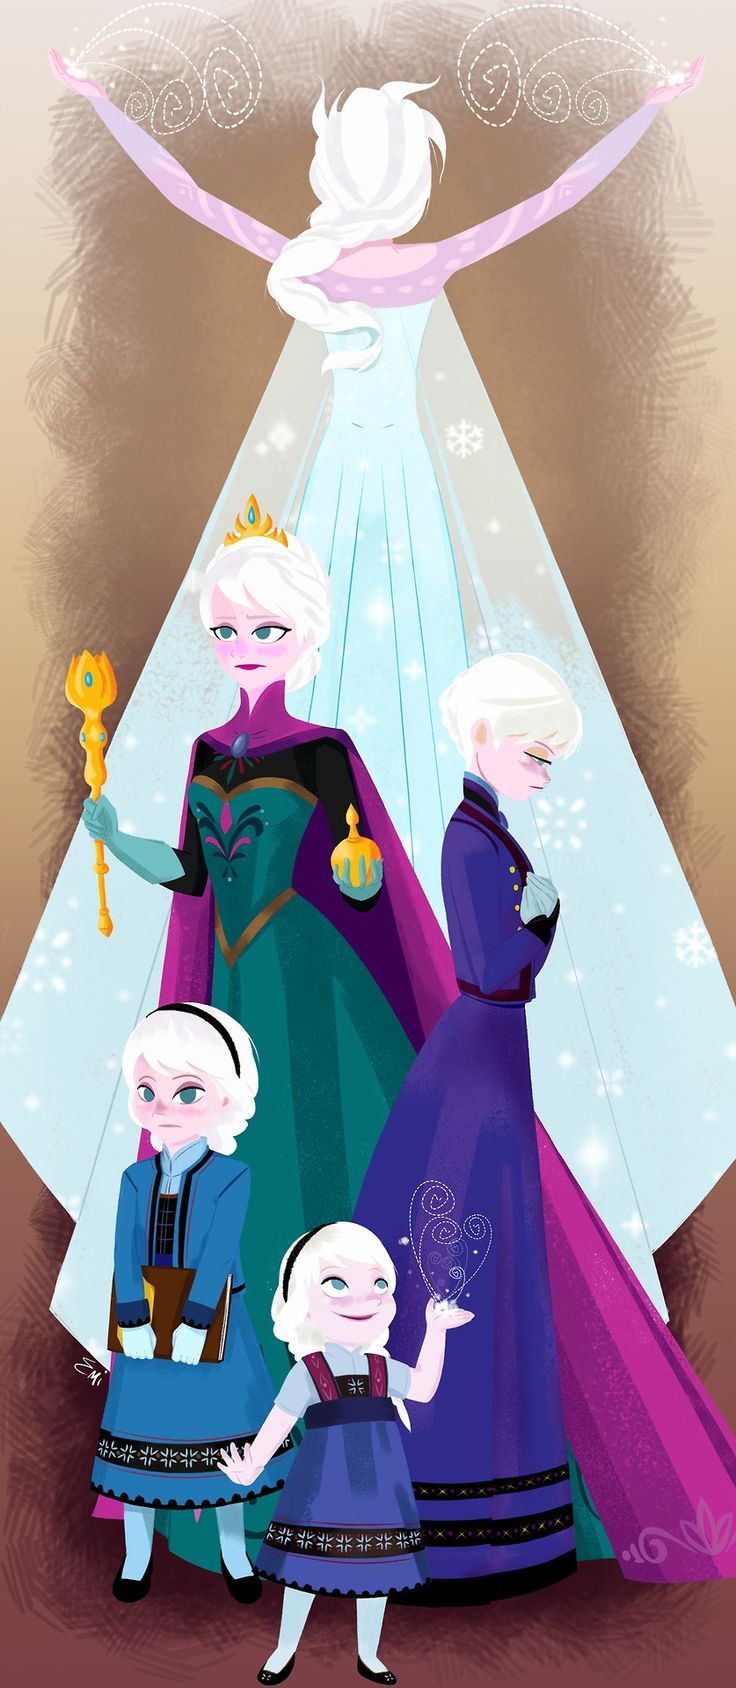 Anna From Frozen Fan Art | disney anna frozen Princess Anna kristoff Disney fan art disney frozen ...